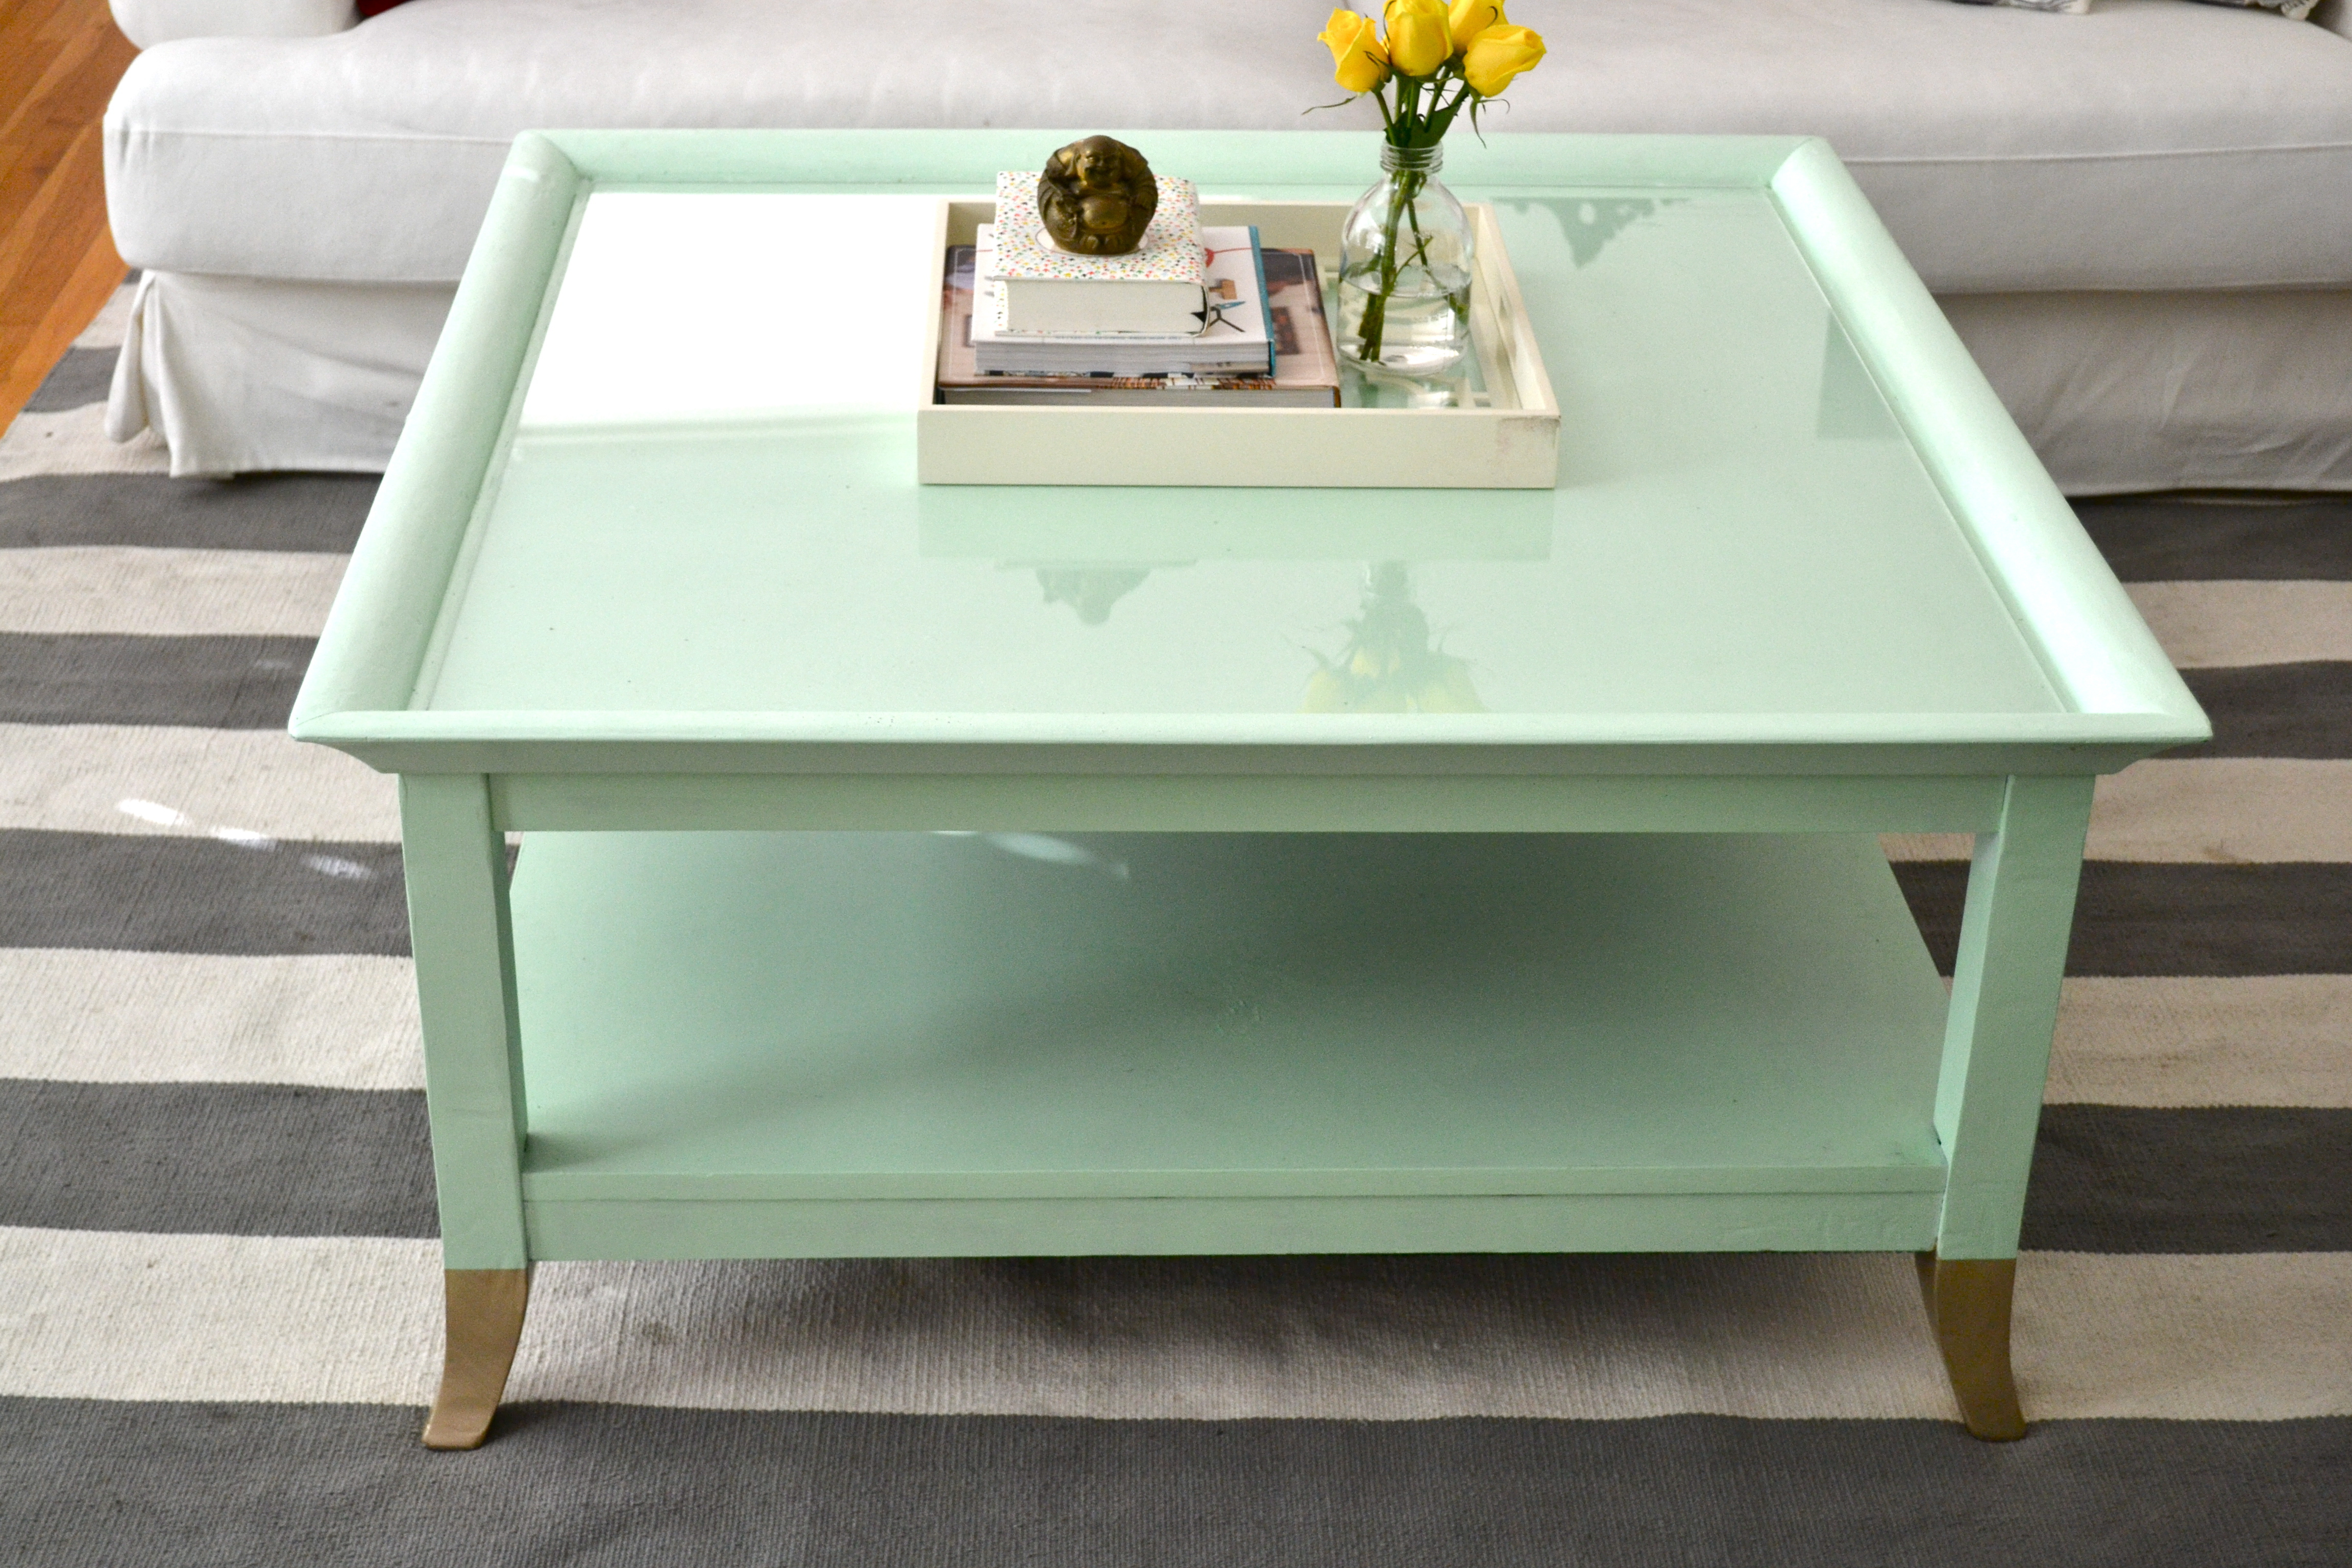 Painted coffee table design images photos pictures mint painted coffee table geotapseo Image collections